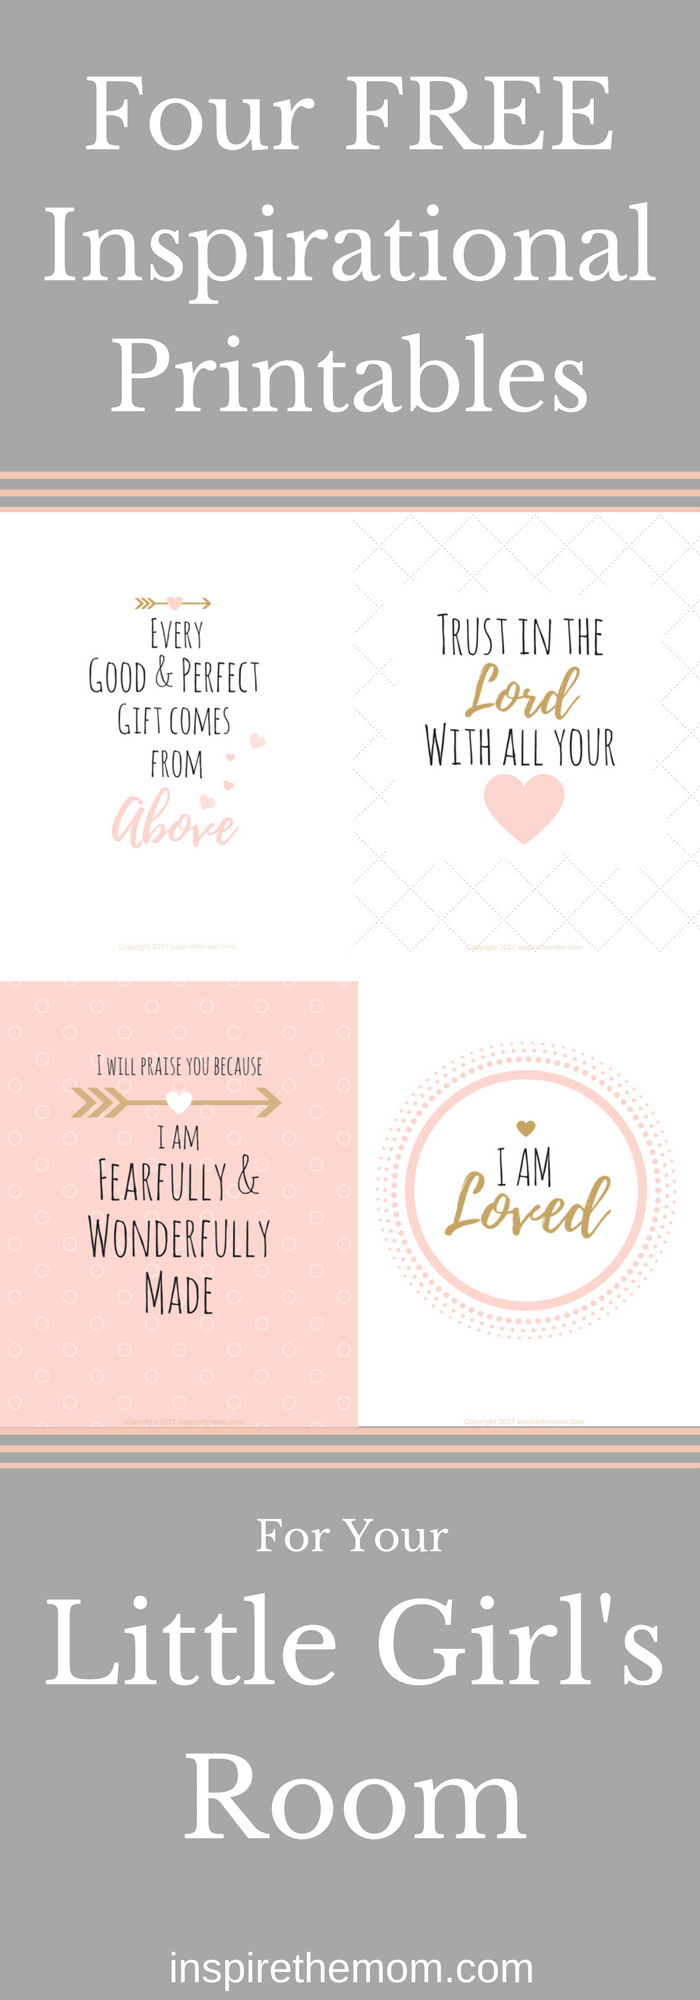 four-inspirational-printables-for-your-little-girls-room